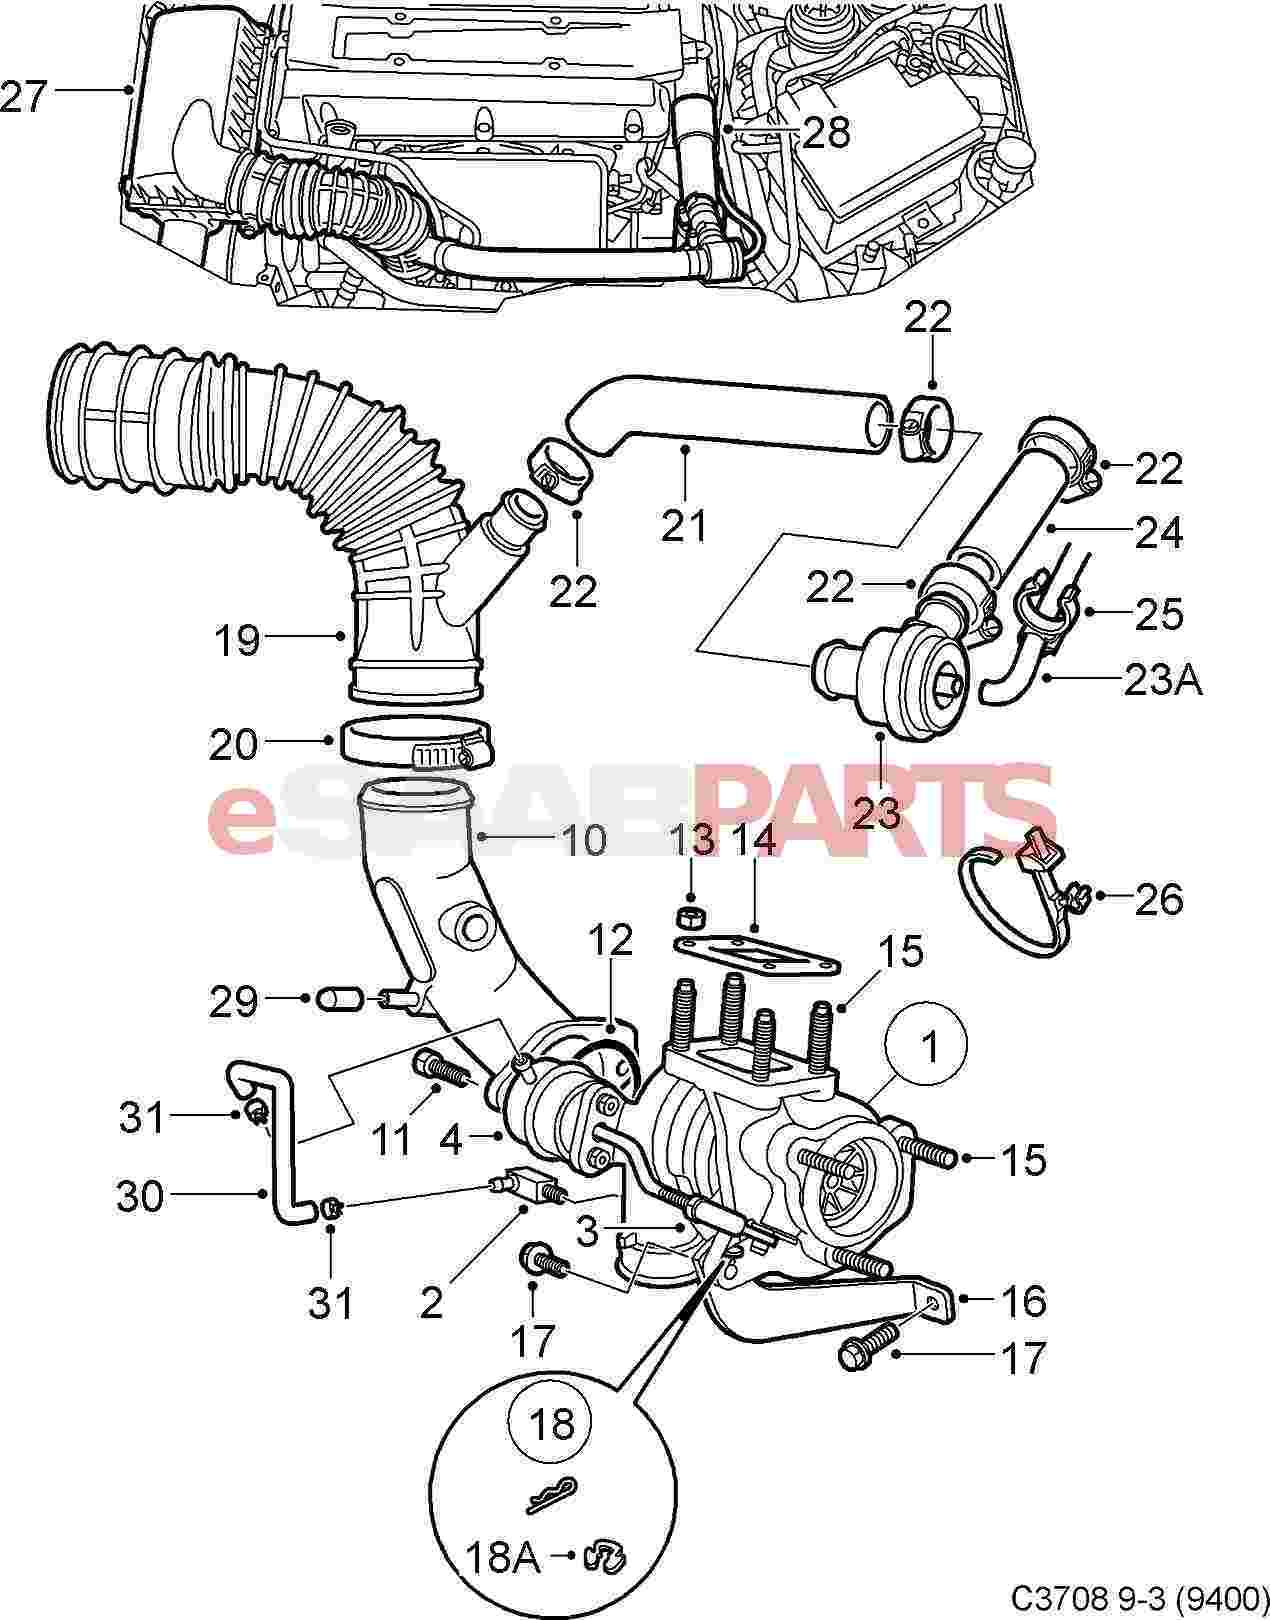 2000 Porsche Boxster Belt Diagram Wiring Schematic likewise Mazda Cx 9 Fuse Box Diagram additionally 4441895 also Outside Air Temperature Sensor Saab Location in addition Knock Sensor Location 1993 Volvo. on saab 9 3 2003 manual